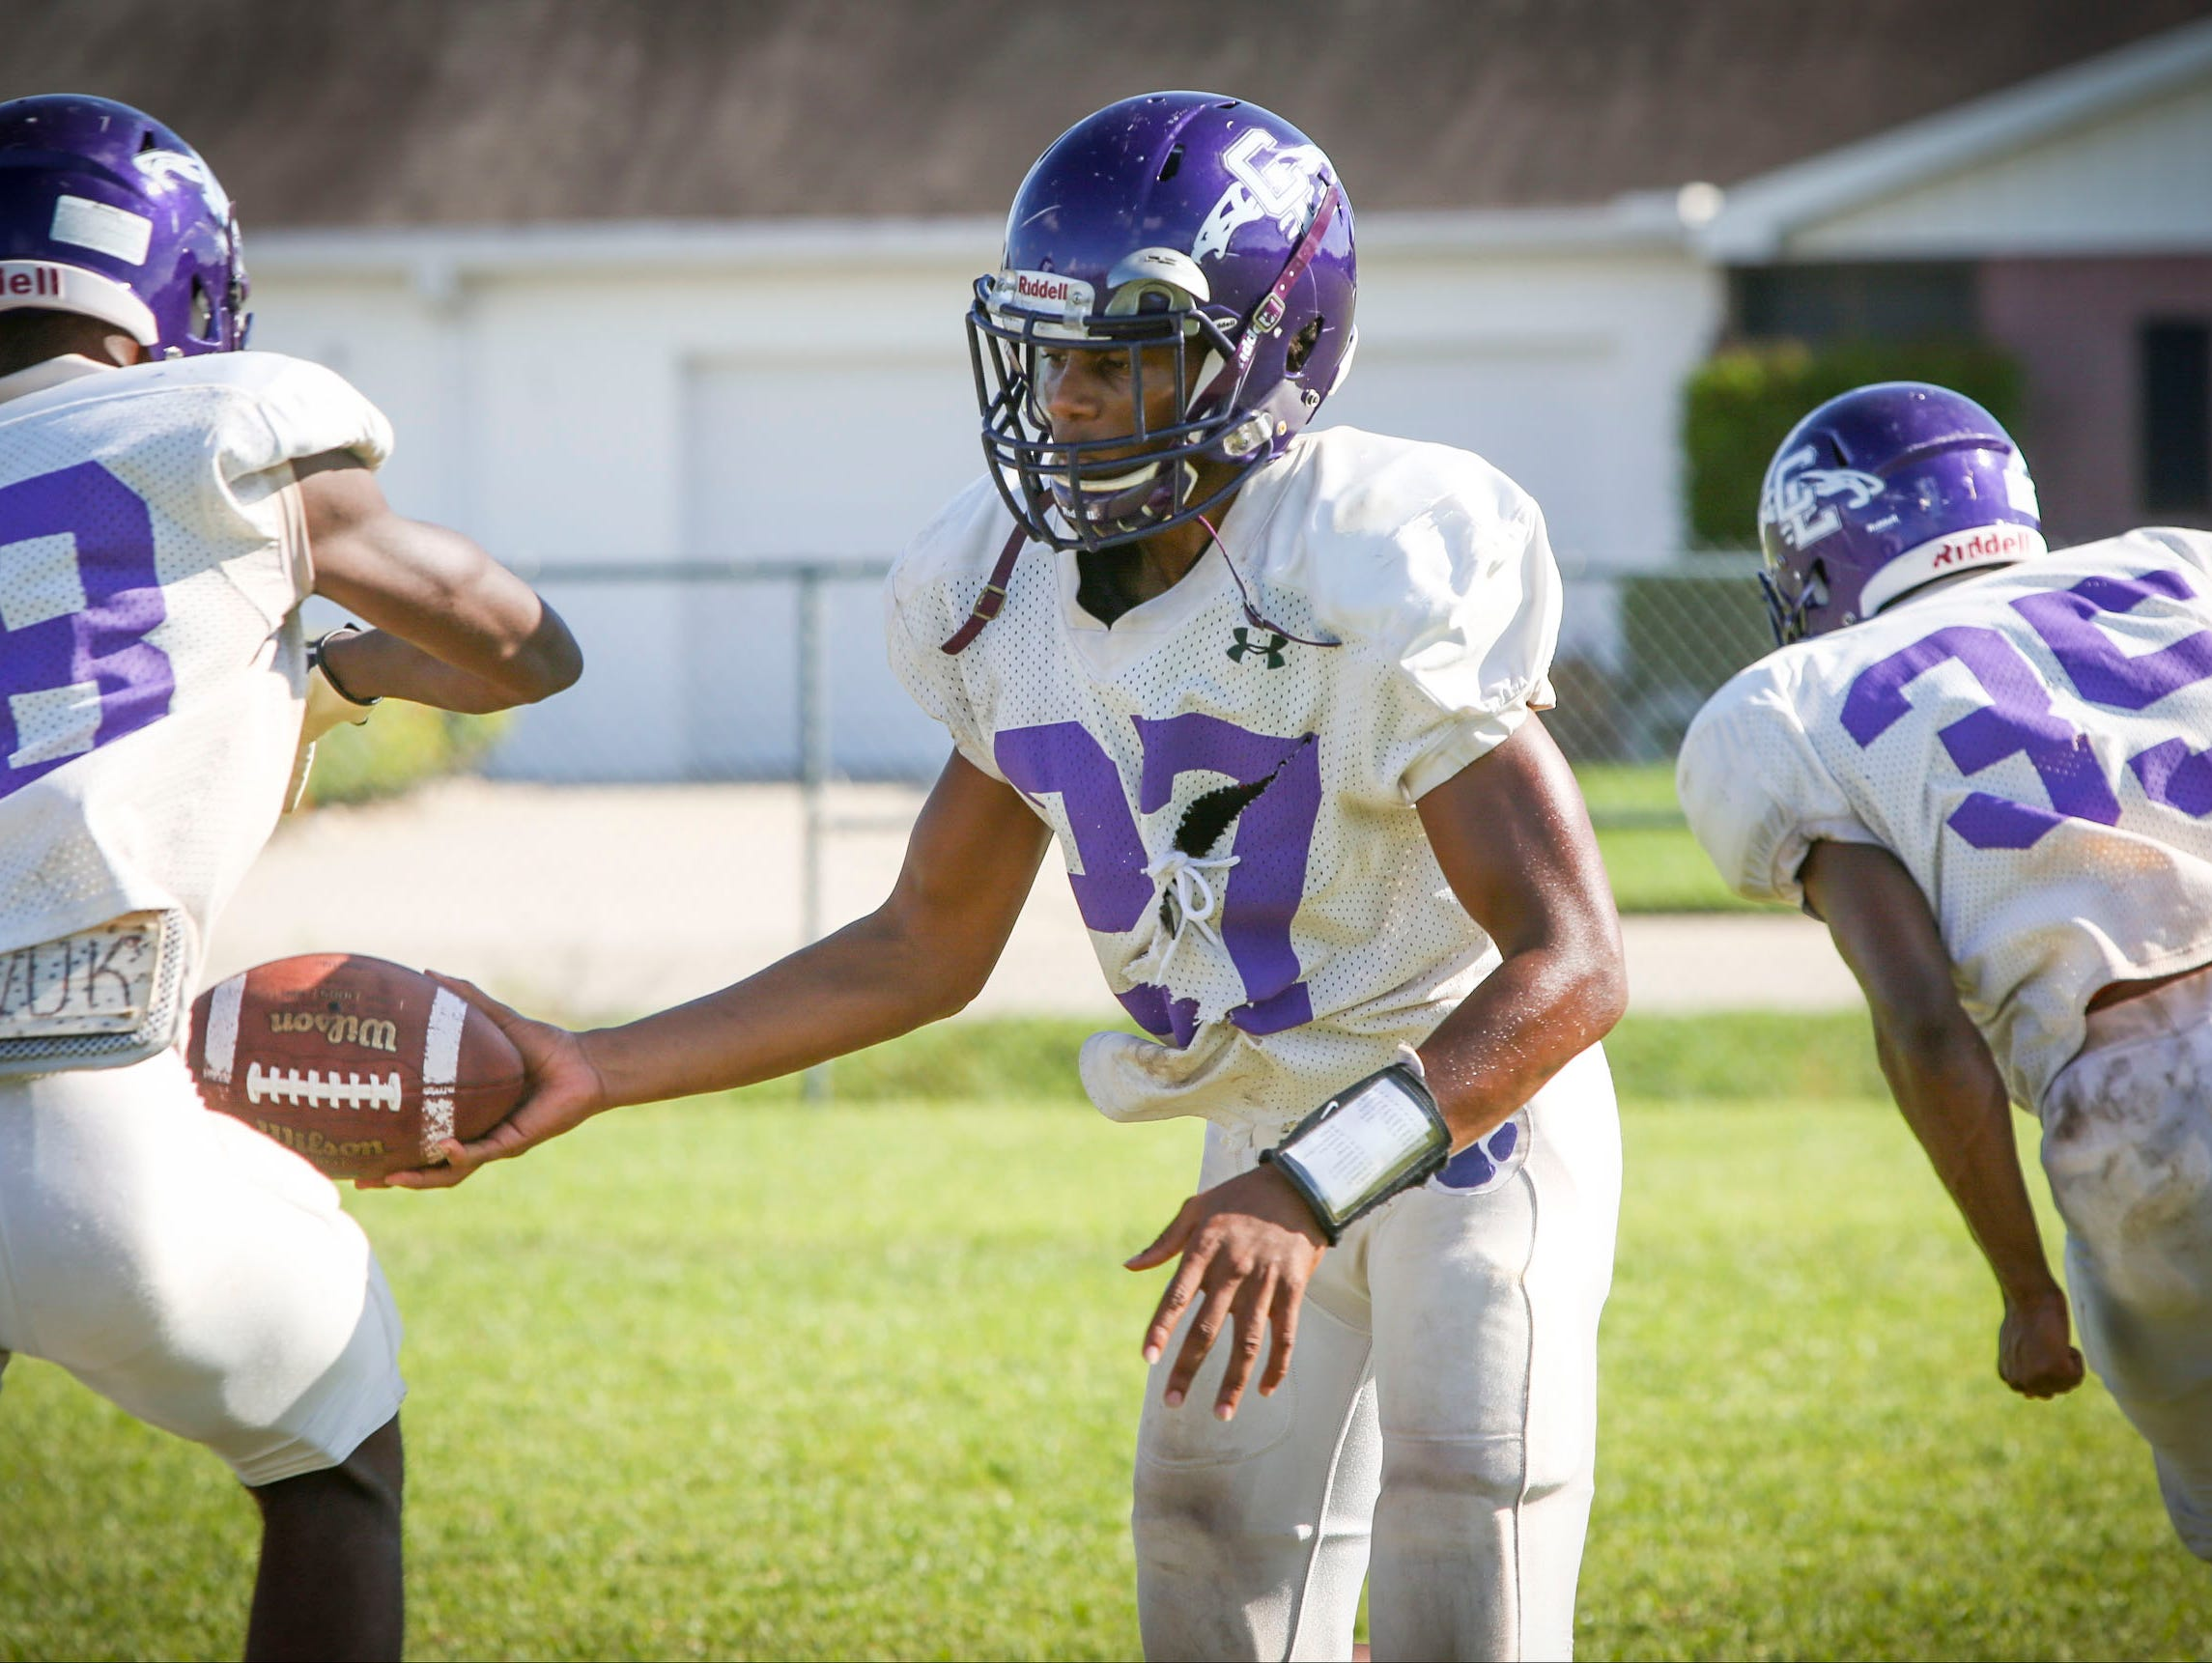 Trent Rogers, quarterback at Cypress Lake High School, hands off the ball to a teammate during football practice Wednesday afternoon.